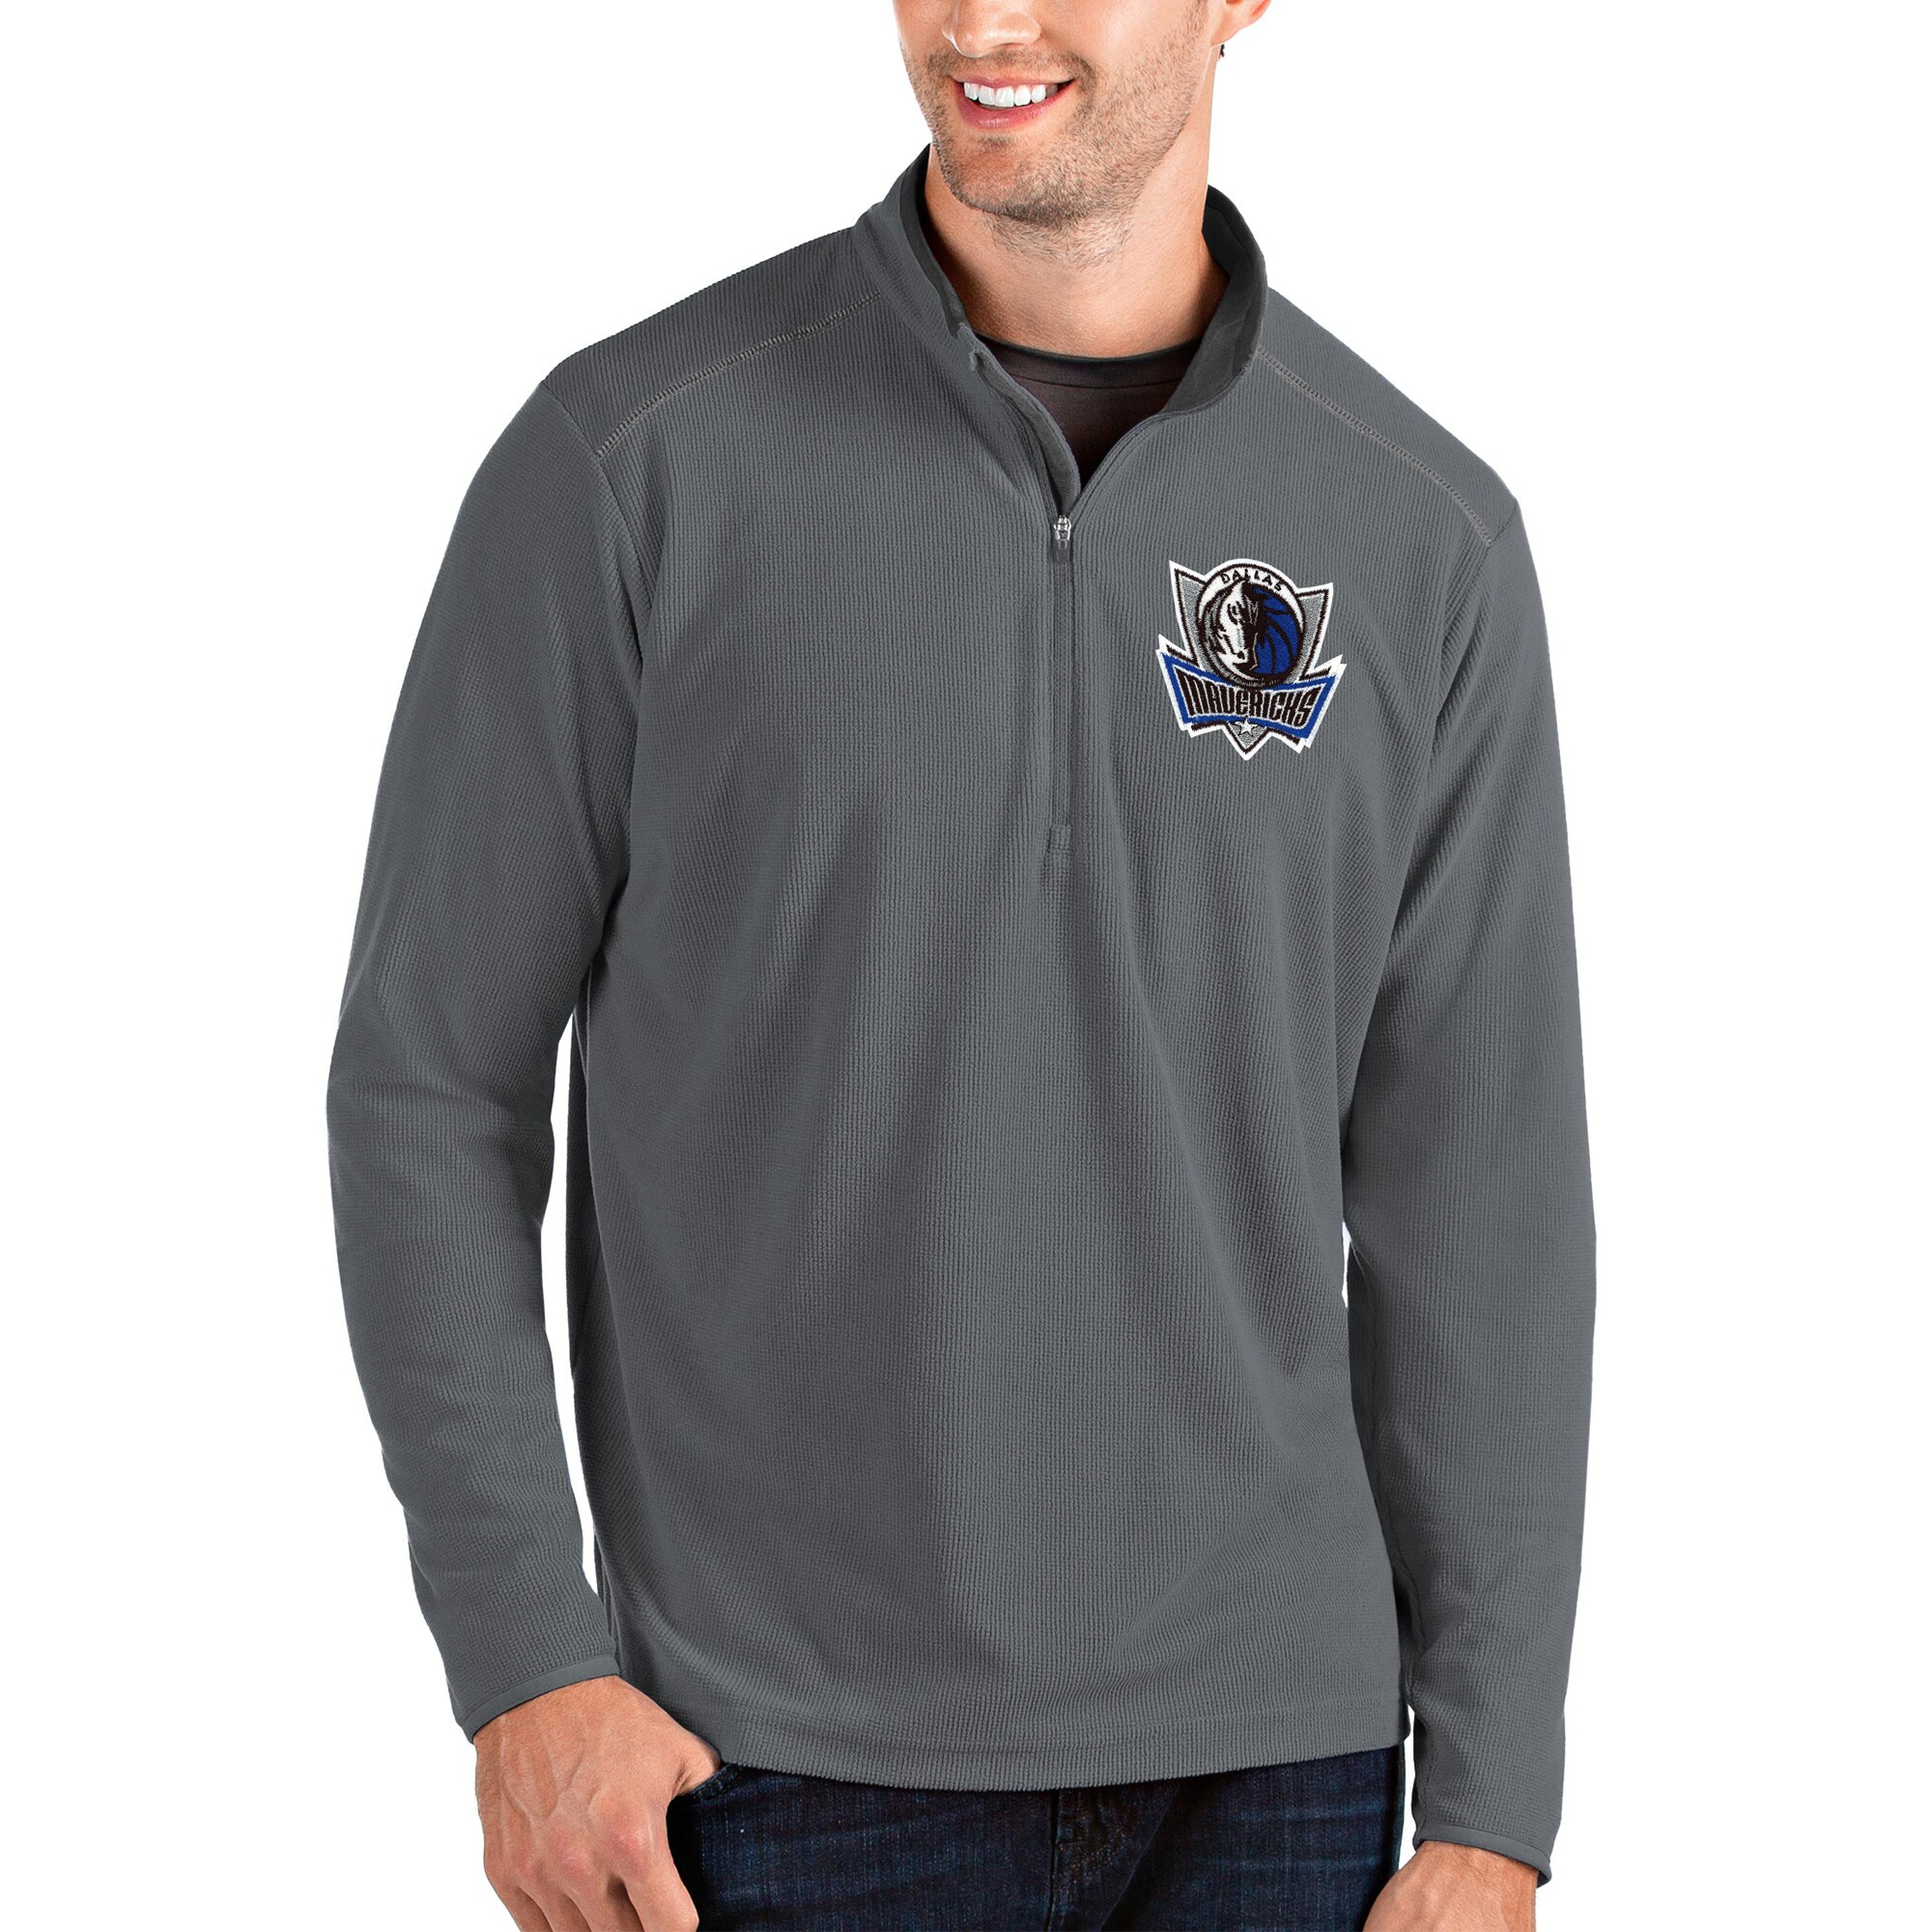 Dallas Mavericks Antigua Glacier Quarter-Zip Pullover Jacket - Charcoal/Gray